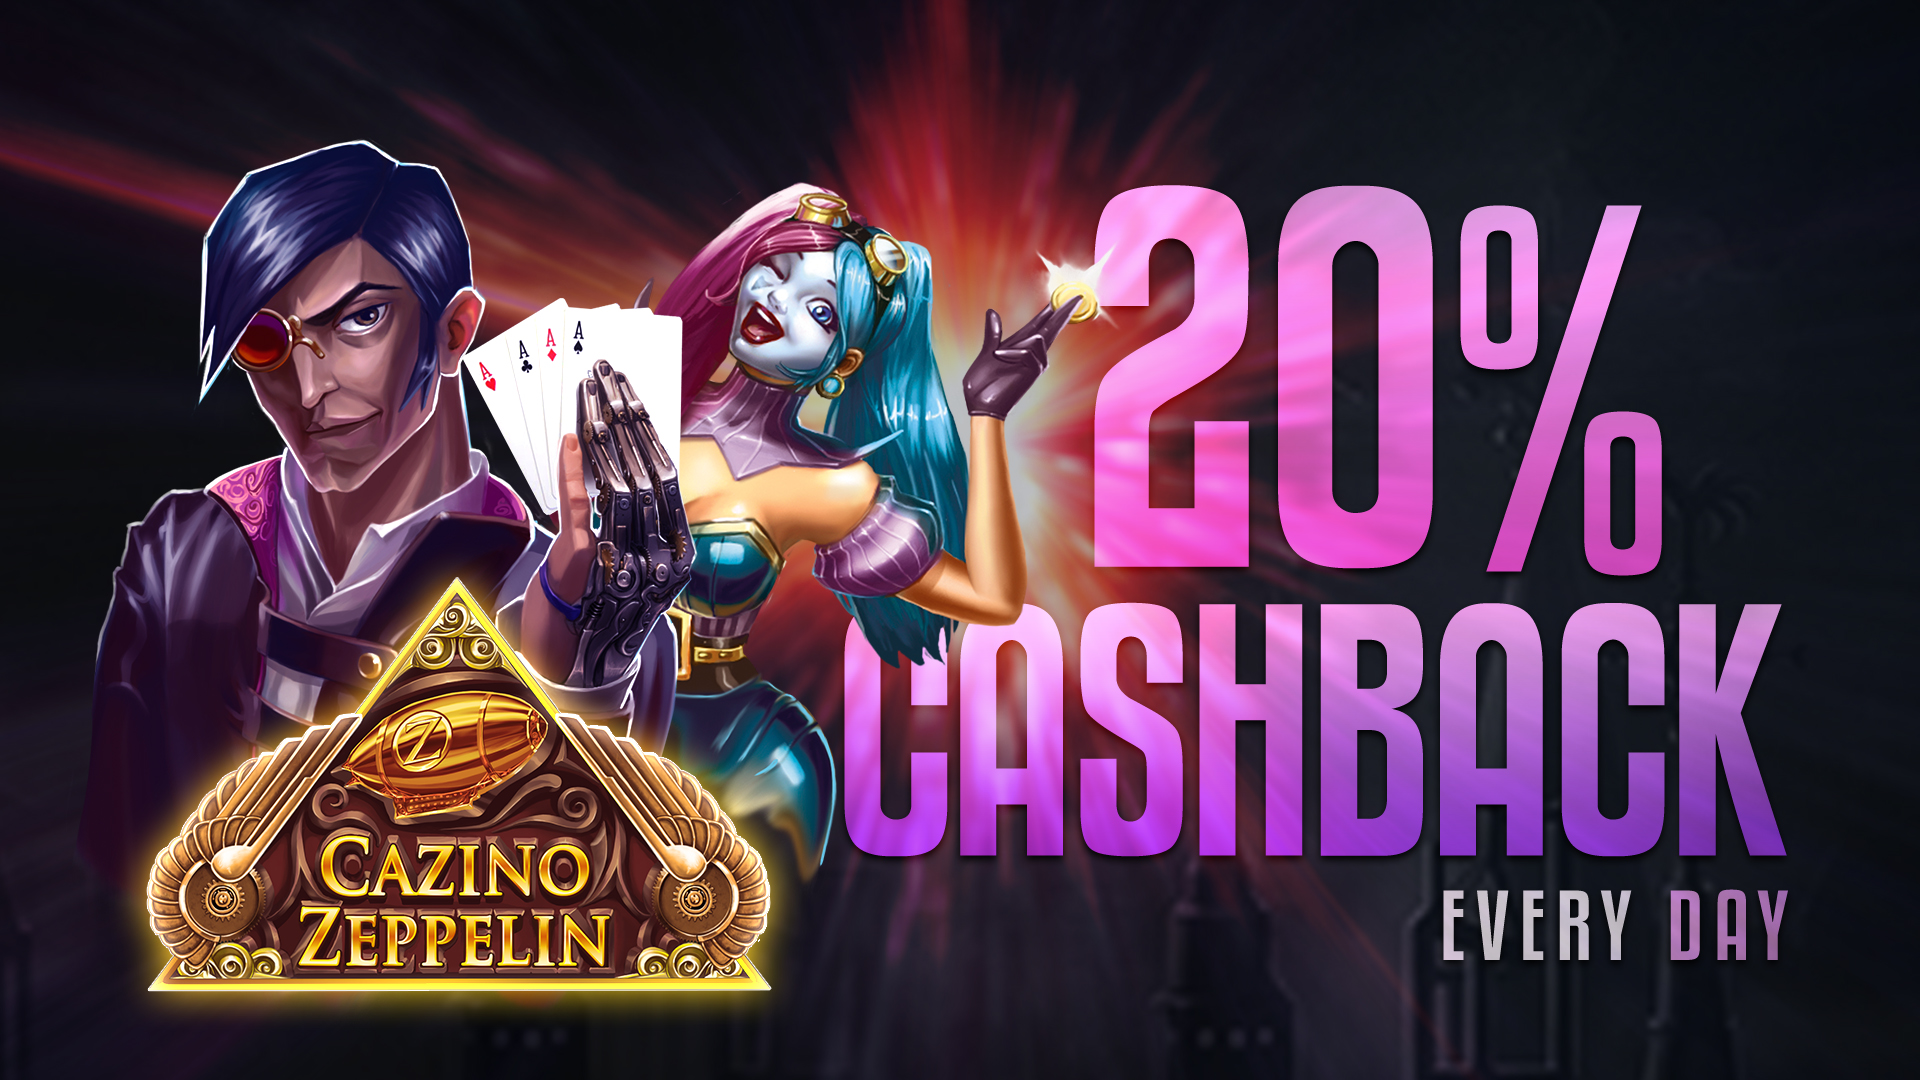 Daily Cashback up to 20%, only at mBitcasino